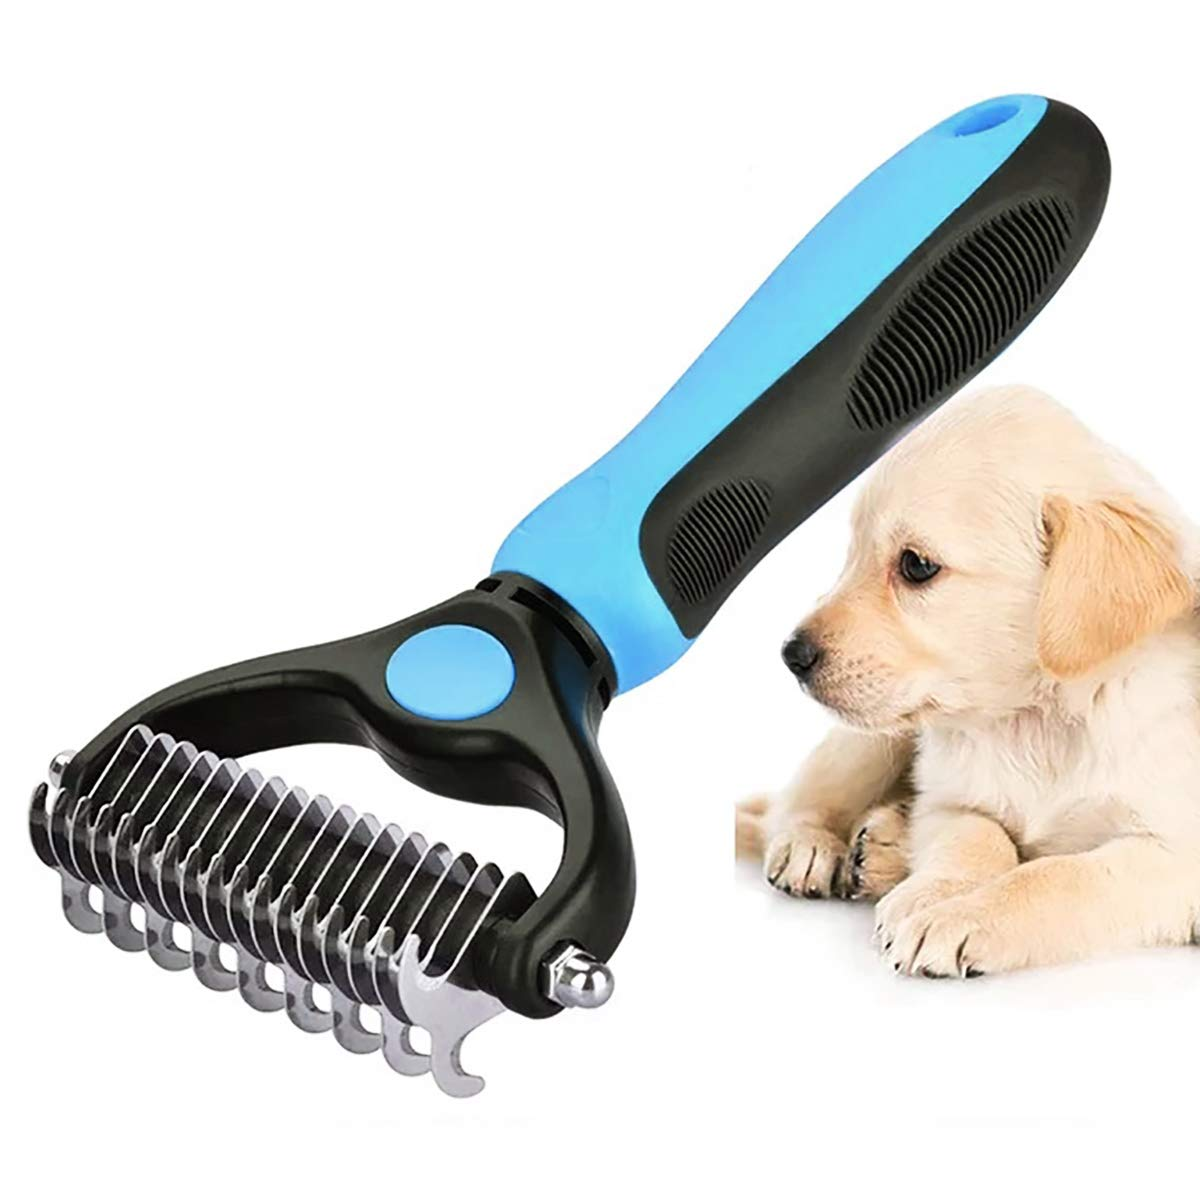 WU CHUNLING Dog Grooming and Dematting Comb 2 Sided Undercoat Rake for Dogs & Cats with Medium & Long Hair Pet Detangler Tool, Dog Brushes for Shedding, Blue by WU CHUNLING